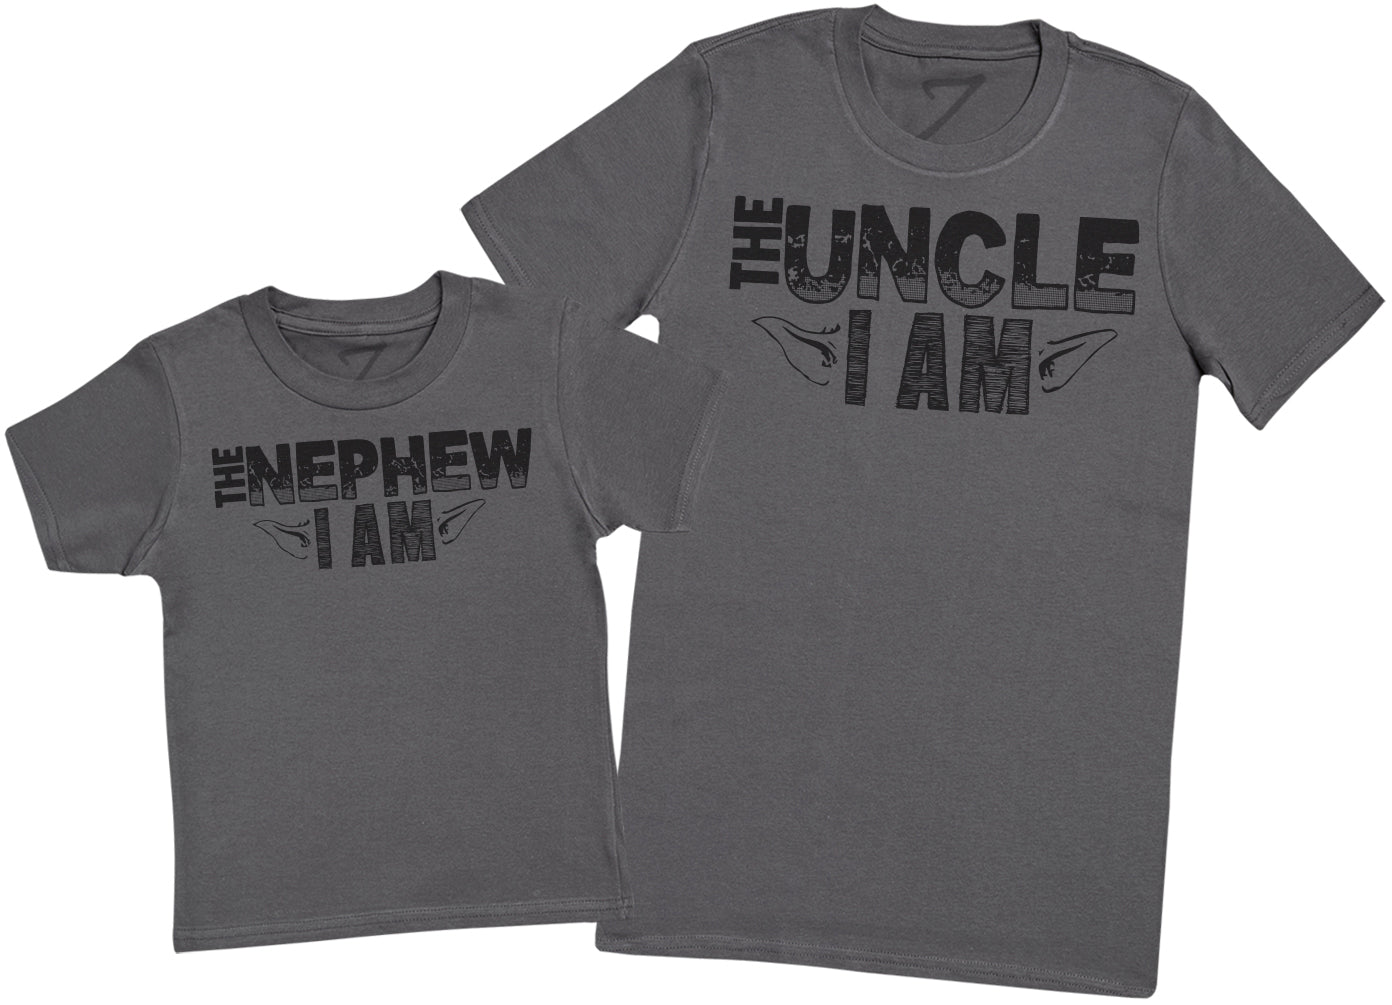 The Nephew I Am, The Uncle I Am - Mens T Shirt & Kid's T - Shirt